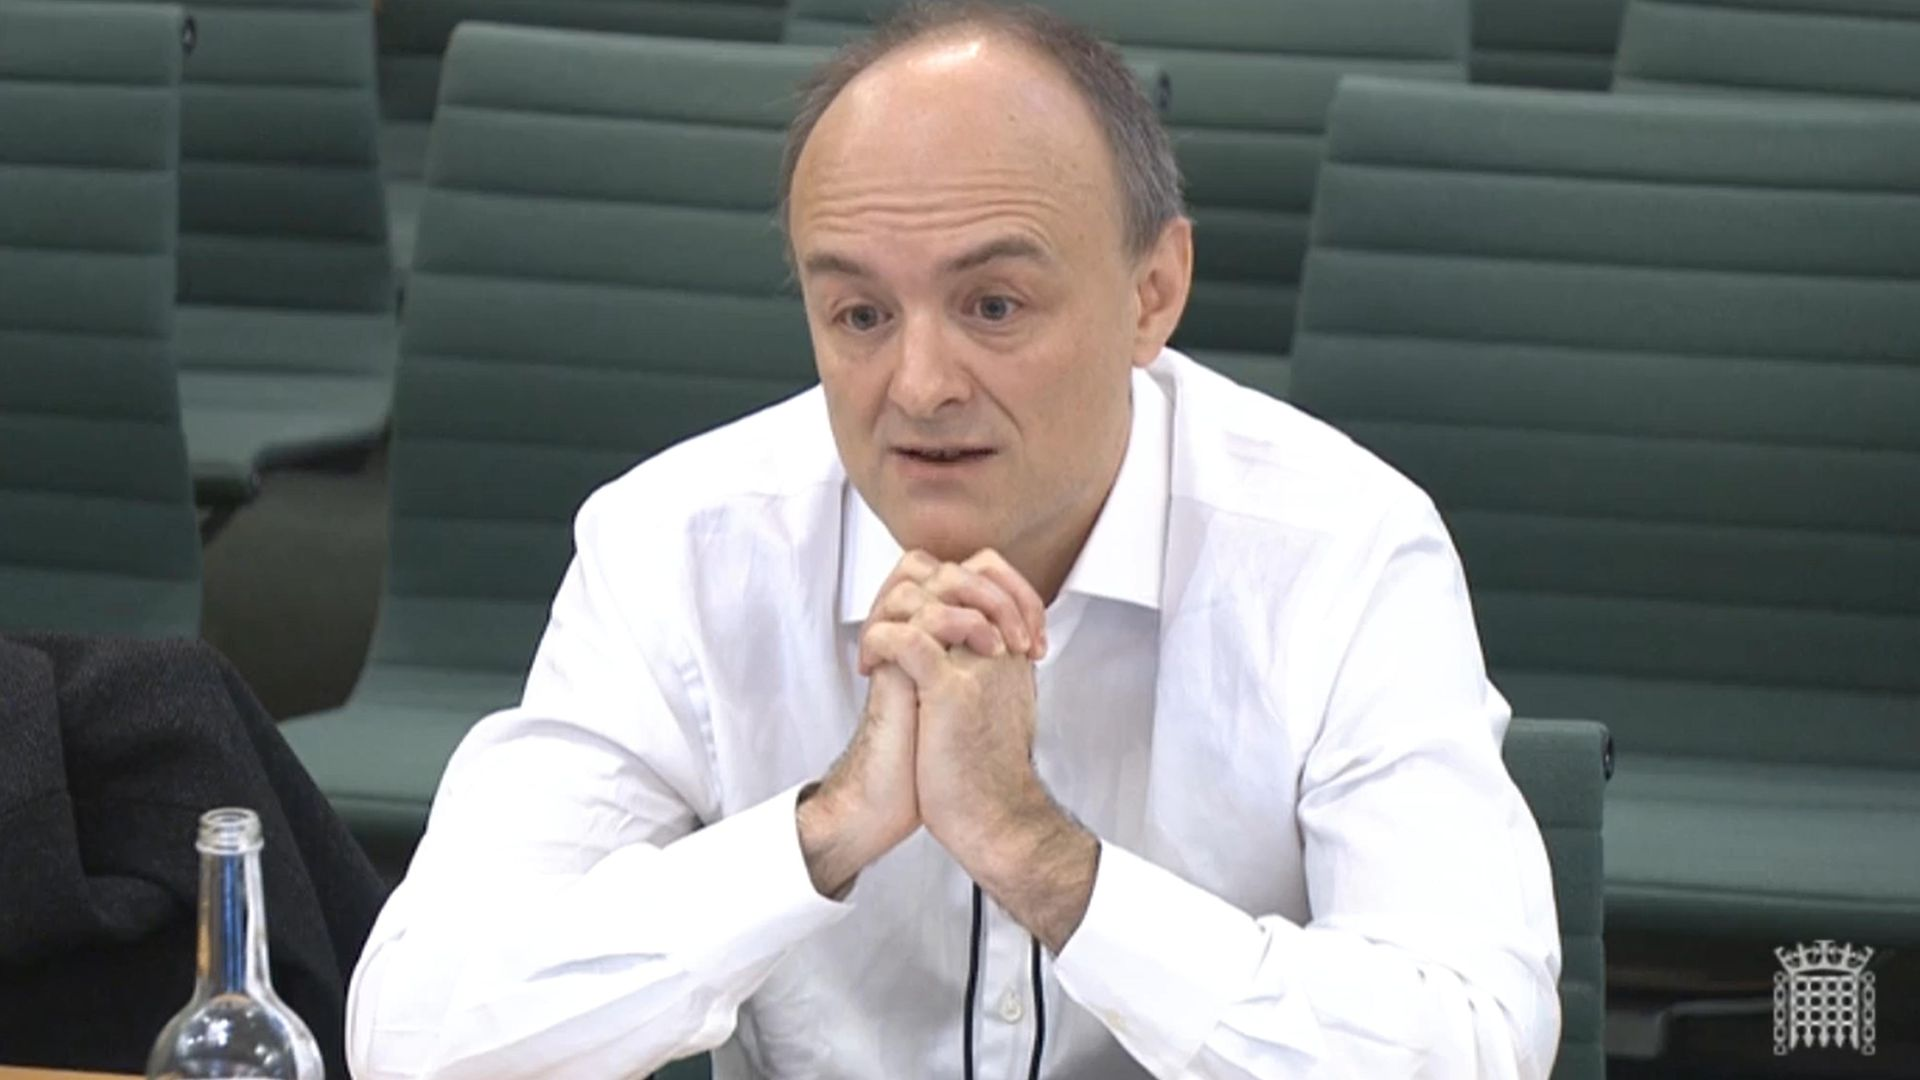 Dominic Cummings giving speaking at the Commons Science and Technology Committee - Credit: PA